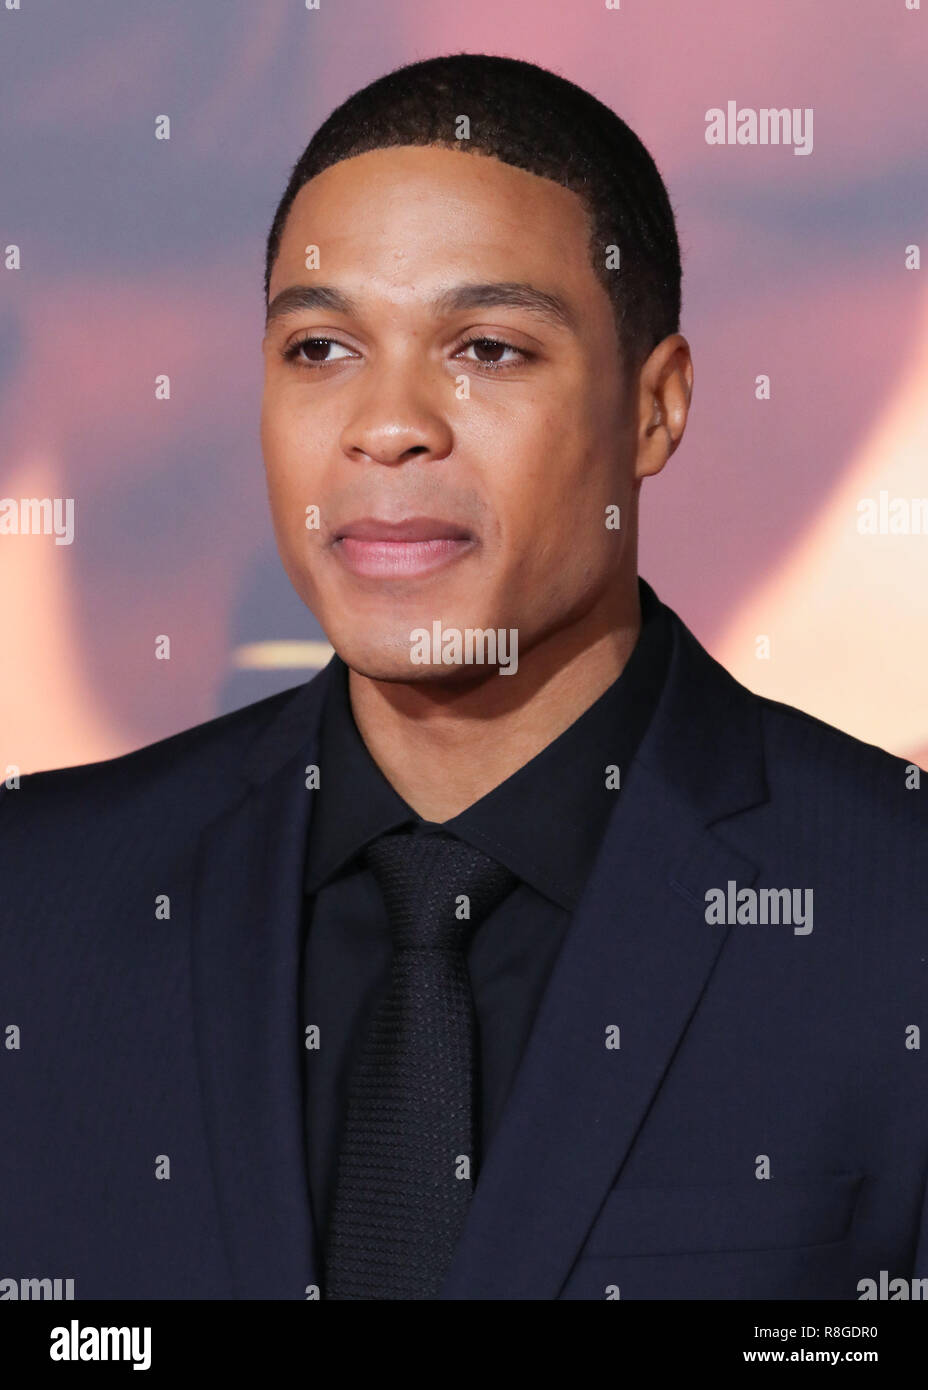 HOLLYWOOD, LOS ANGELES, CA, USA - NOVEMBER 13: Ray Fisher at the World Premiere Of Warner Bros. Pictures' 'Justice League' held at the Dolby Theatre on November 13, 2017 in Hollywood, Los Angeles, California, United States. (Photo by David Acosta/Image Press Agency) - Stock Image